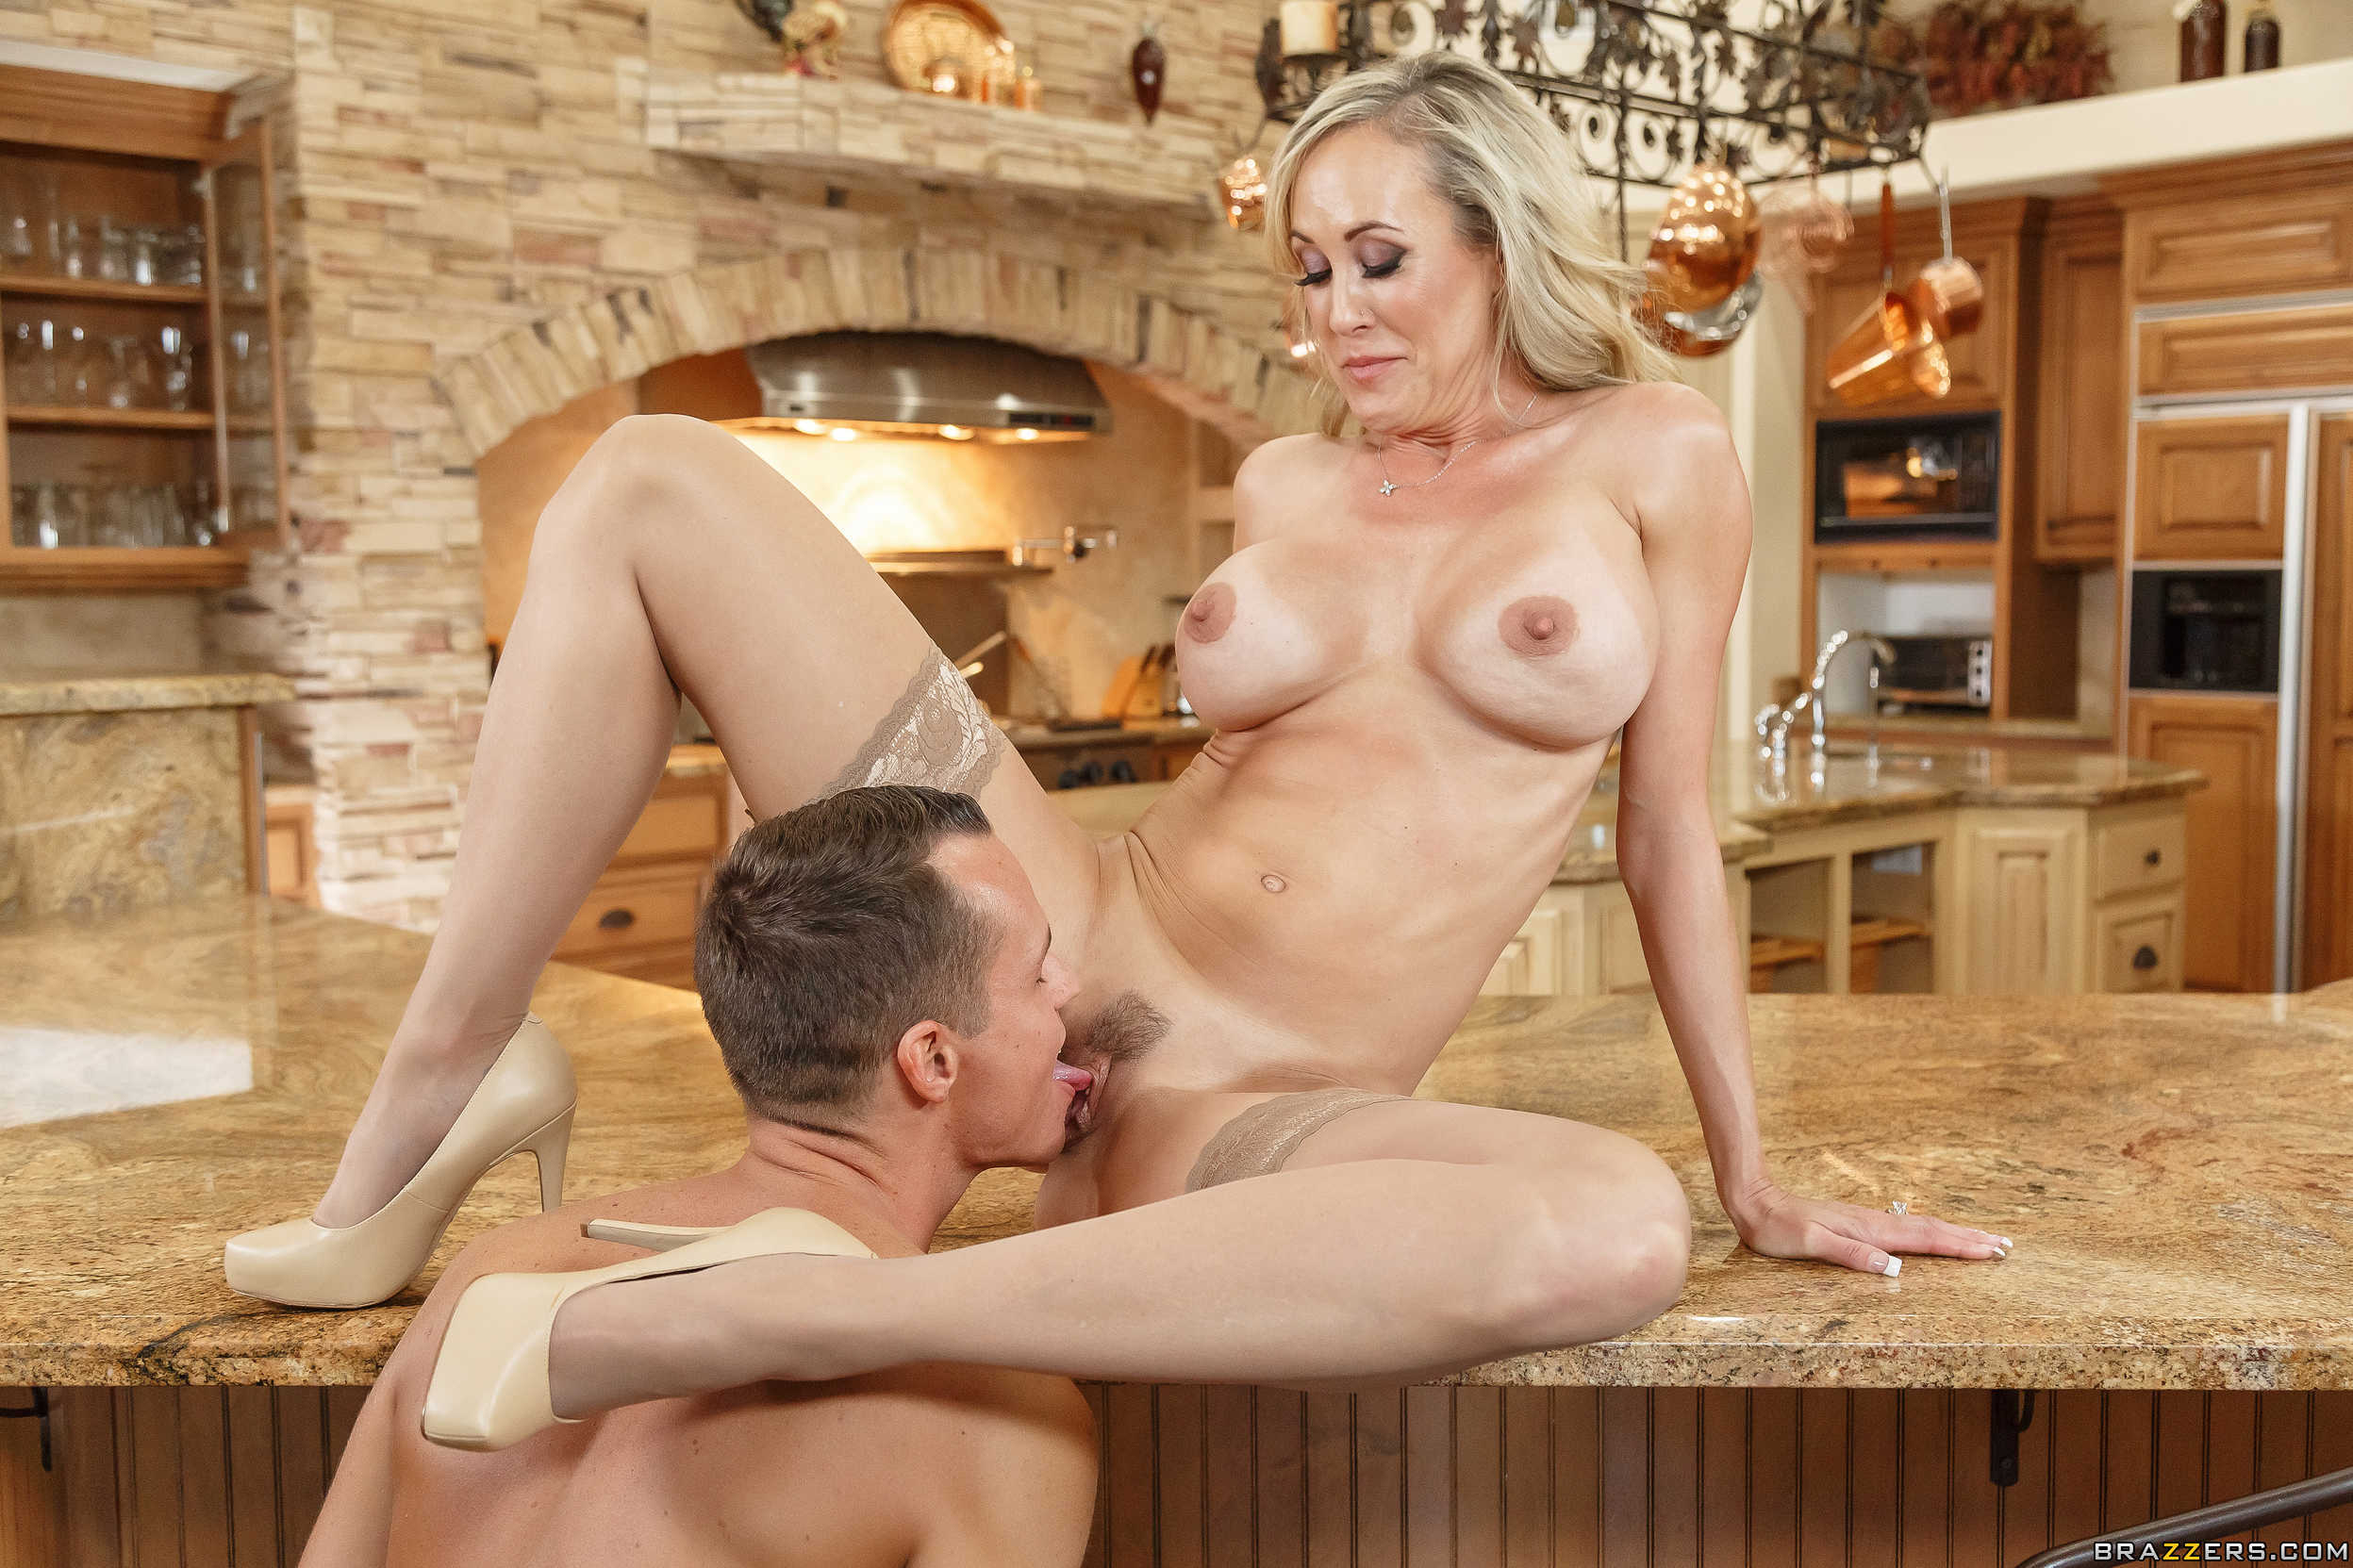 Lusty milf tiffany rousso gets her pussy licked and nailed hardcore